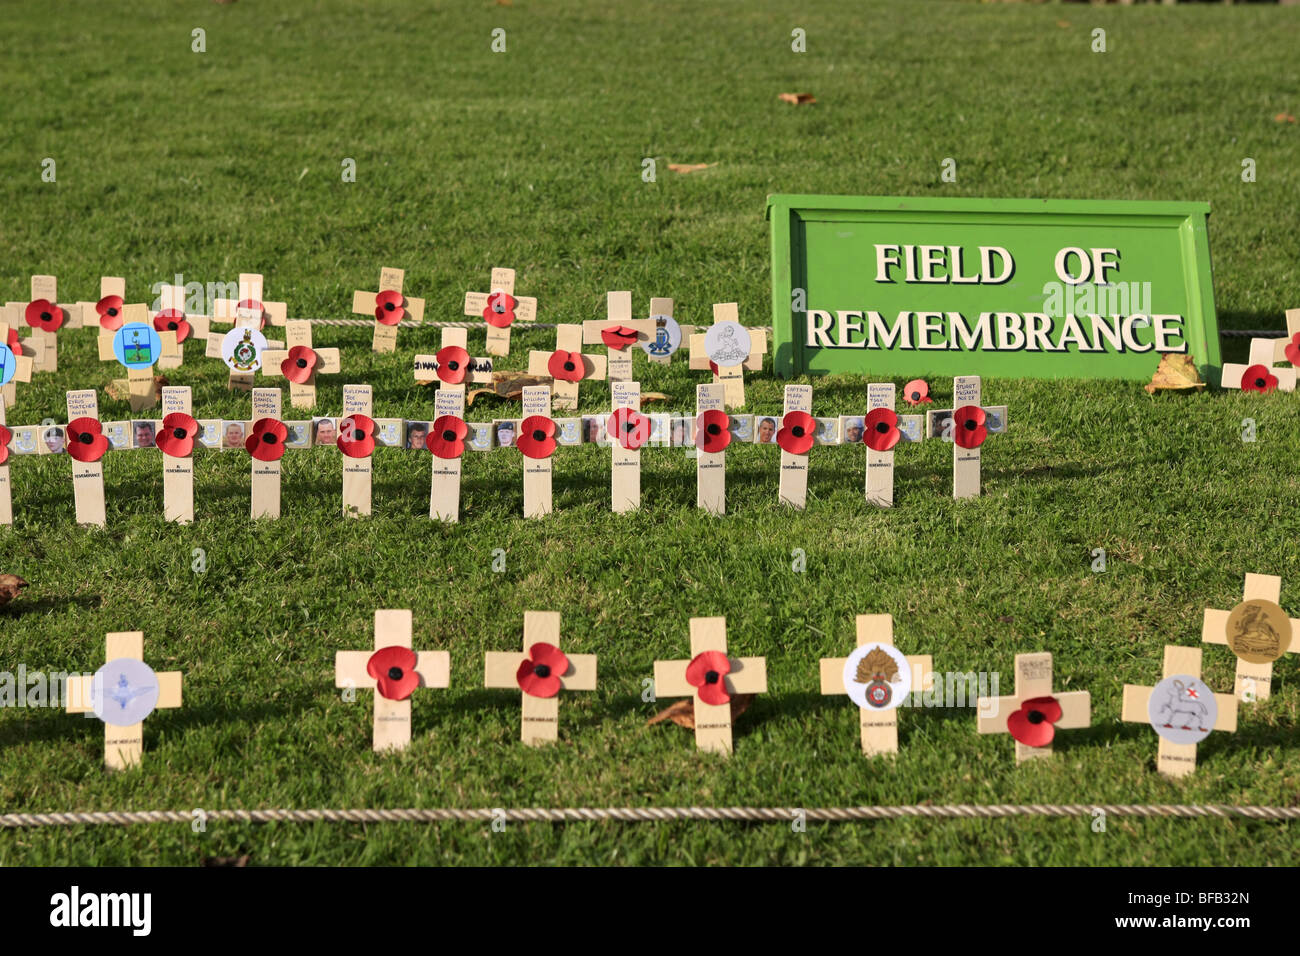 Field of Remembrance - November 11 Armistice Day - Stock Image